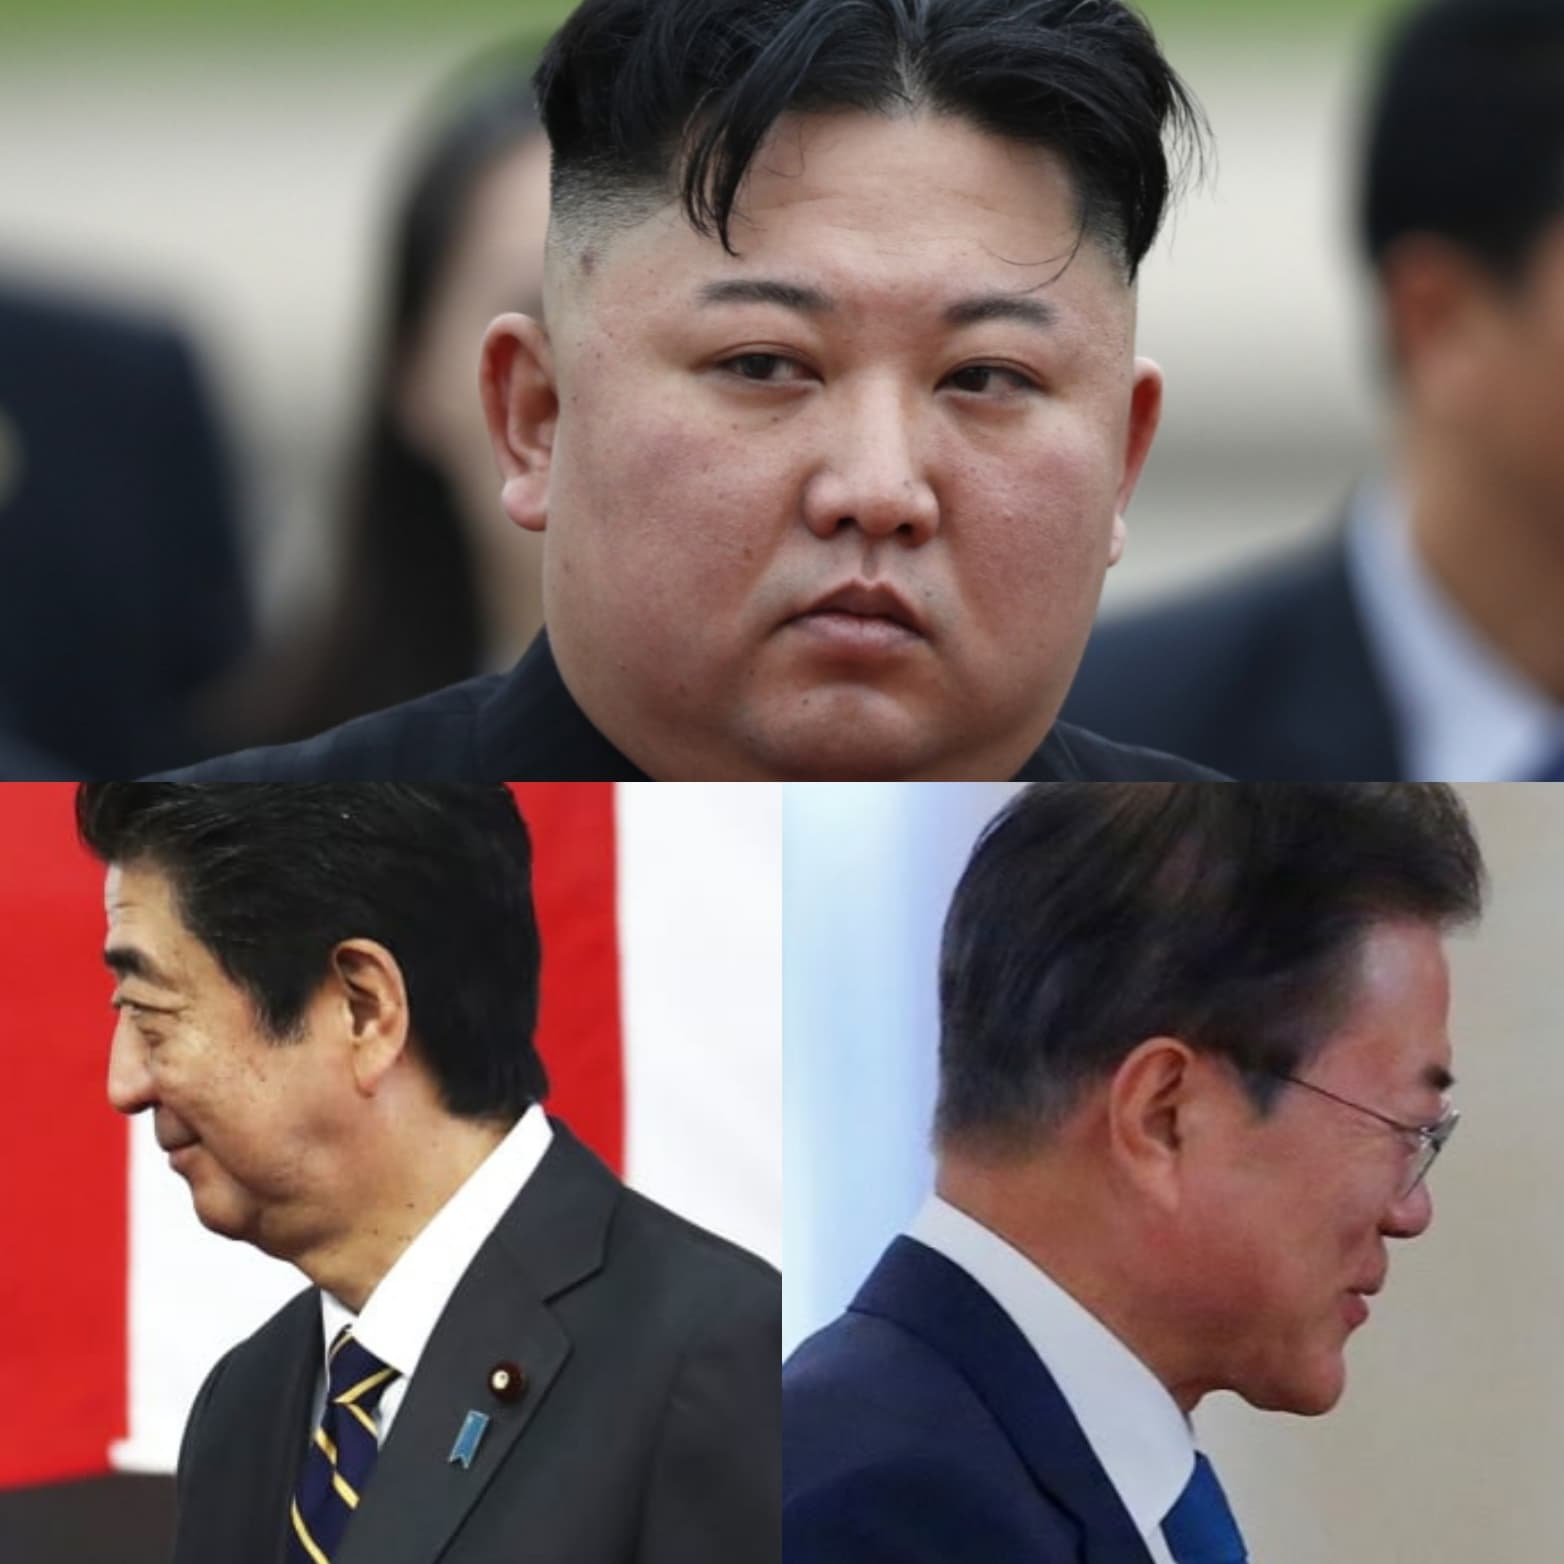 Japan-Korea Row: Some things we should know